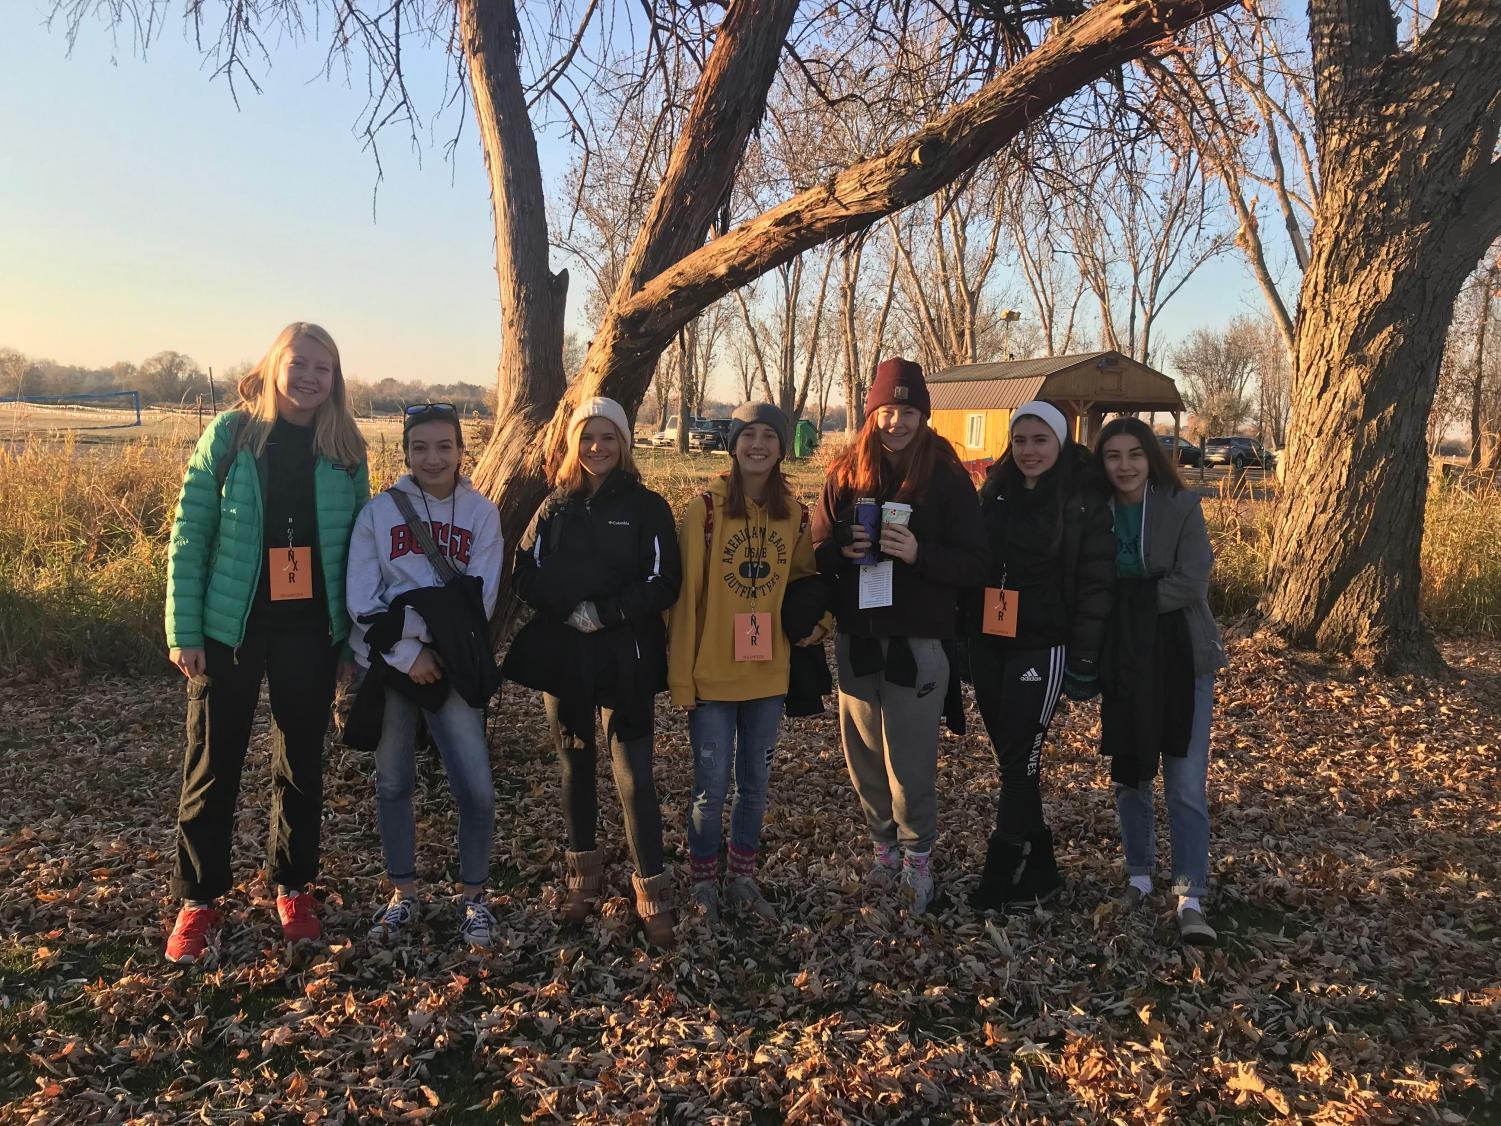 Megan Bass, Gracie Maulik, Ella Schmitz, Caitlin Atkins, Sophia Martin, Alana Cronin, Kyra Cronin (left to right)  BHS Sophomores and Juniors volunteering at the Nike Regionals Cross Country Meet. What a great way to help out the community!